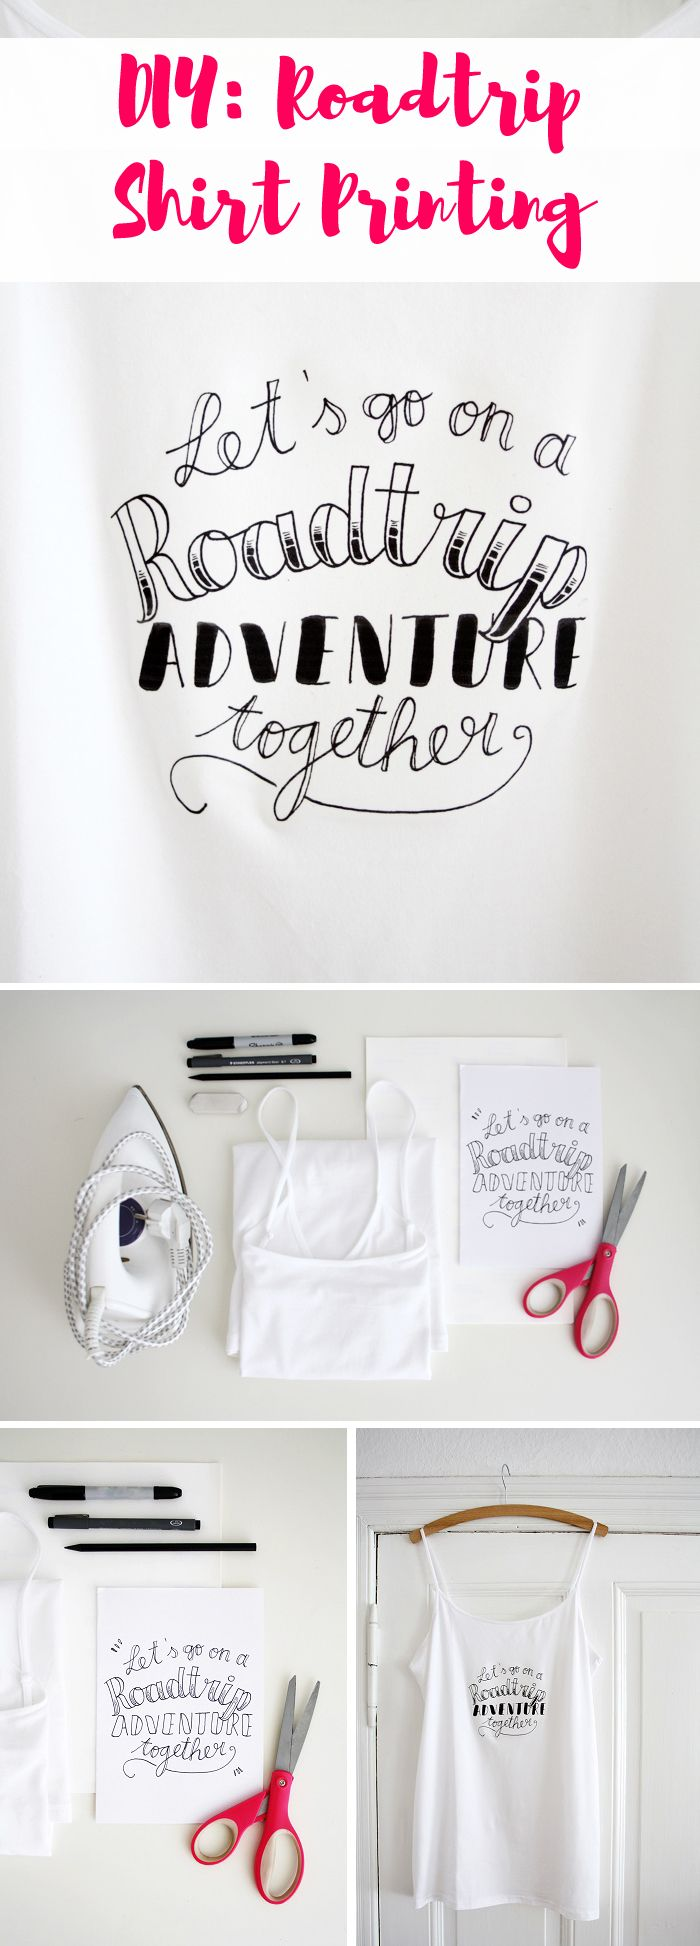 """Roadtrips and adventures, this is what summer is about! Come and join us for an easy and super fun creative project and print your own handlettered shirt for your next journey. Volkswagen, Luloveshandmade and many other bloggers share even more inspiration in the """"DIY Bloggers for Volkswagen""""-board: https://de.pinterest.com/volkswagen/diy-bloggers-for-volkswagen/"""